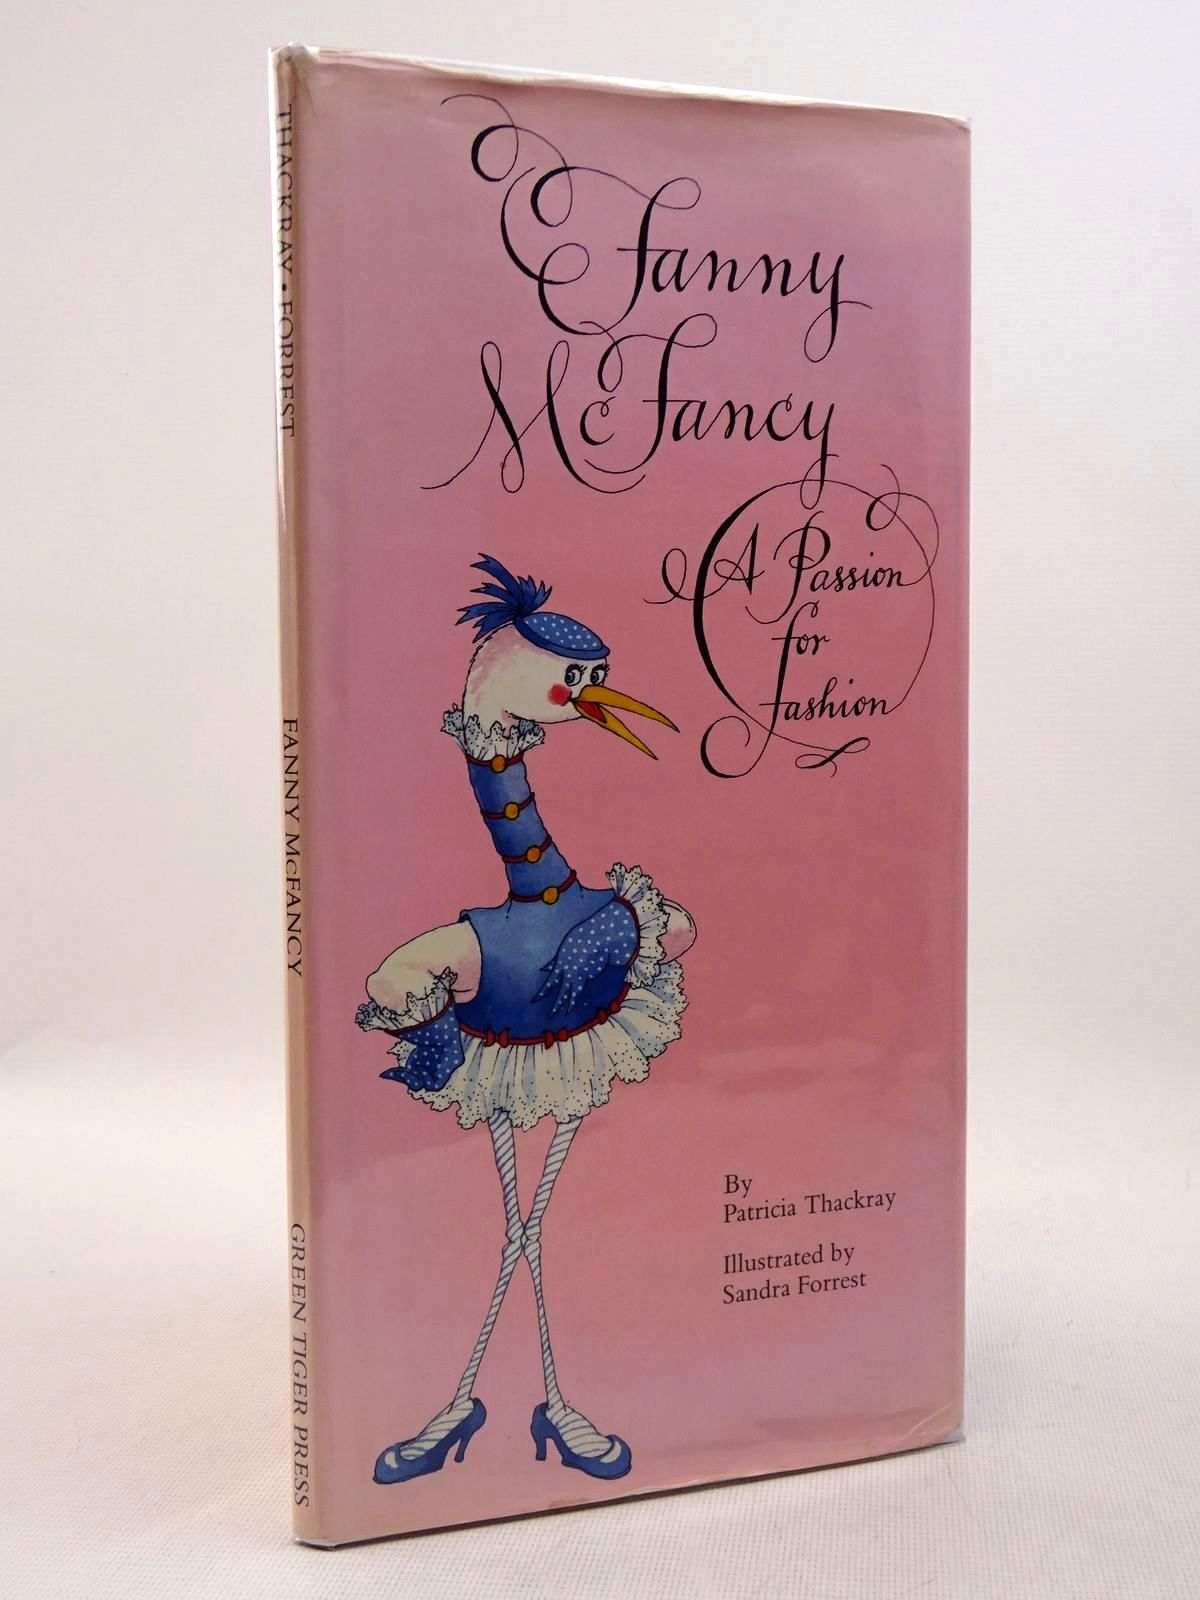 Photo of FANNY MCFANCY A PASSION FOR FASHION written by Thackray, Patricia illustrated by Forrest, Sandra published by Green Tiger Press (STOCK CODE: 2128958)  for sale by Stella & Rose's Books